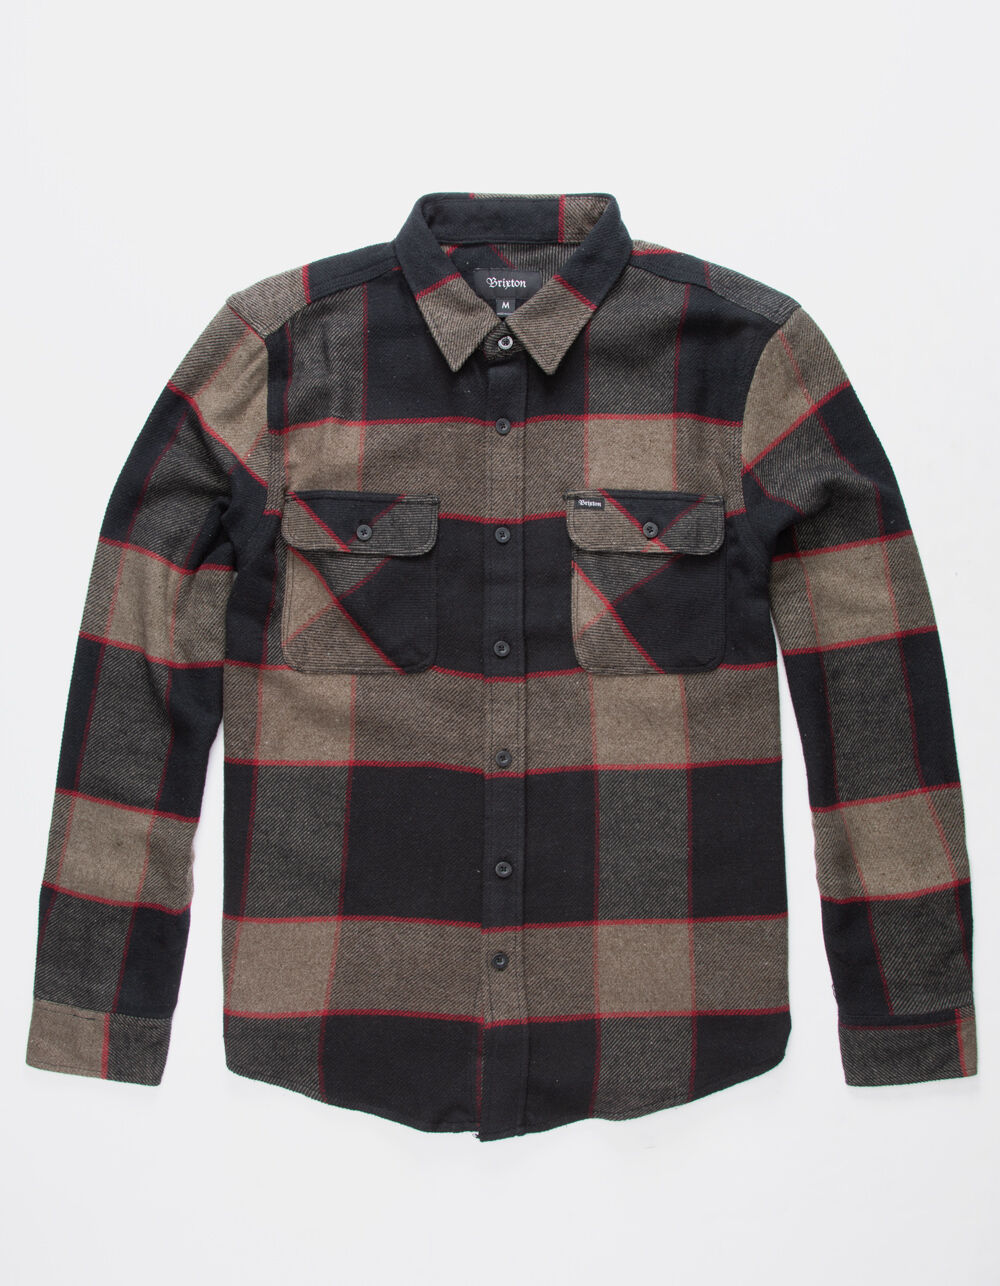 BRIXTON Bowery Charcoal Flannel Shirt